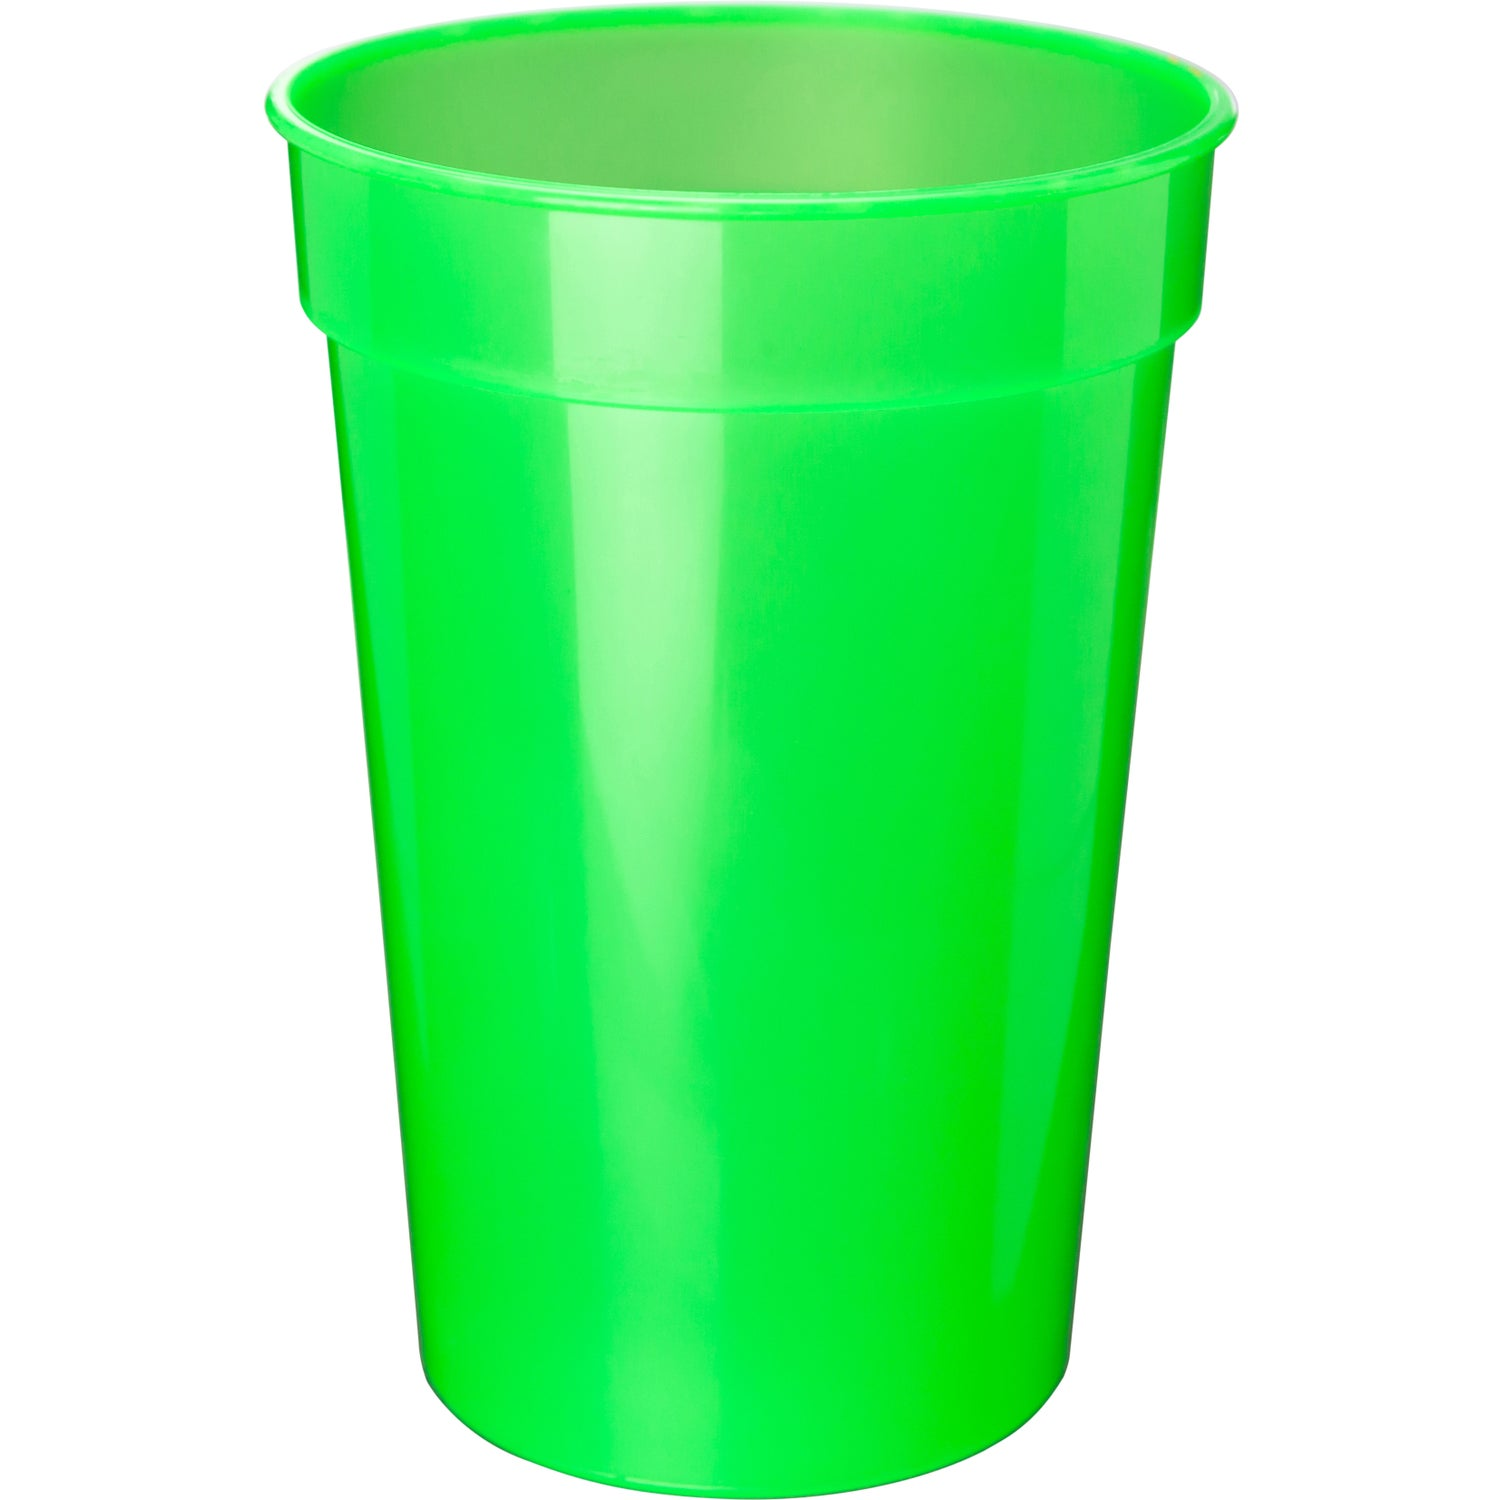 Promotional Mood Stadium Cups with Custom Logo for $0.51 Ea.